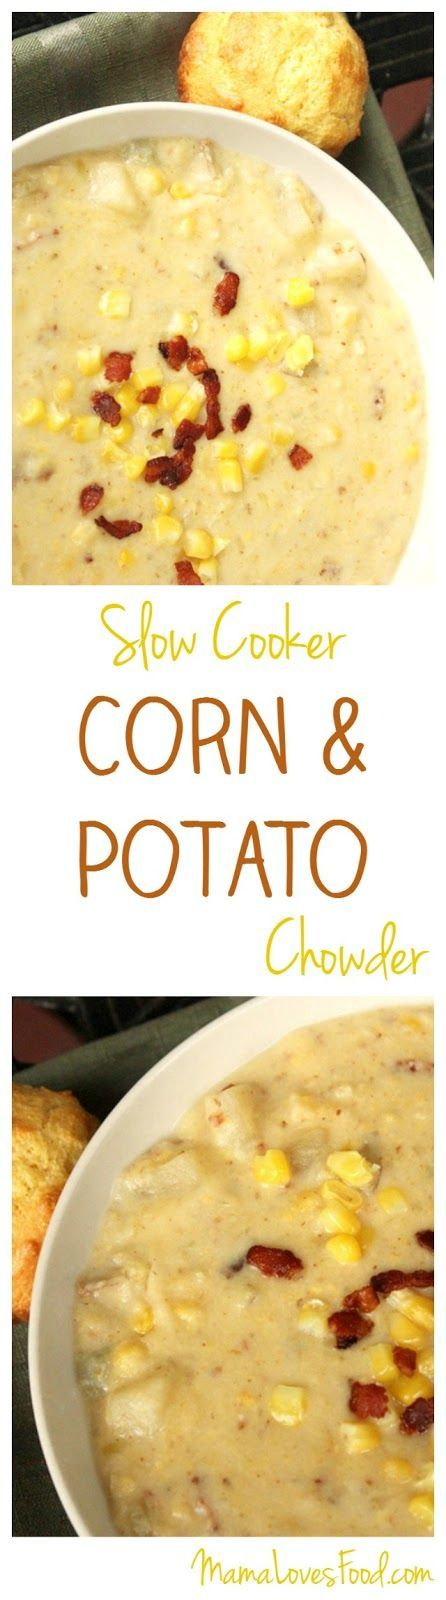 Corn and Potato Chowder Recipe for the Crock Pot Slow Cooker